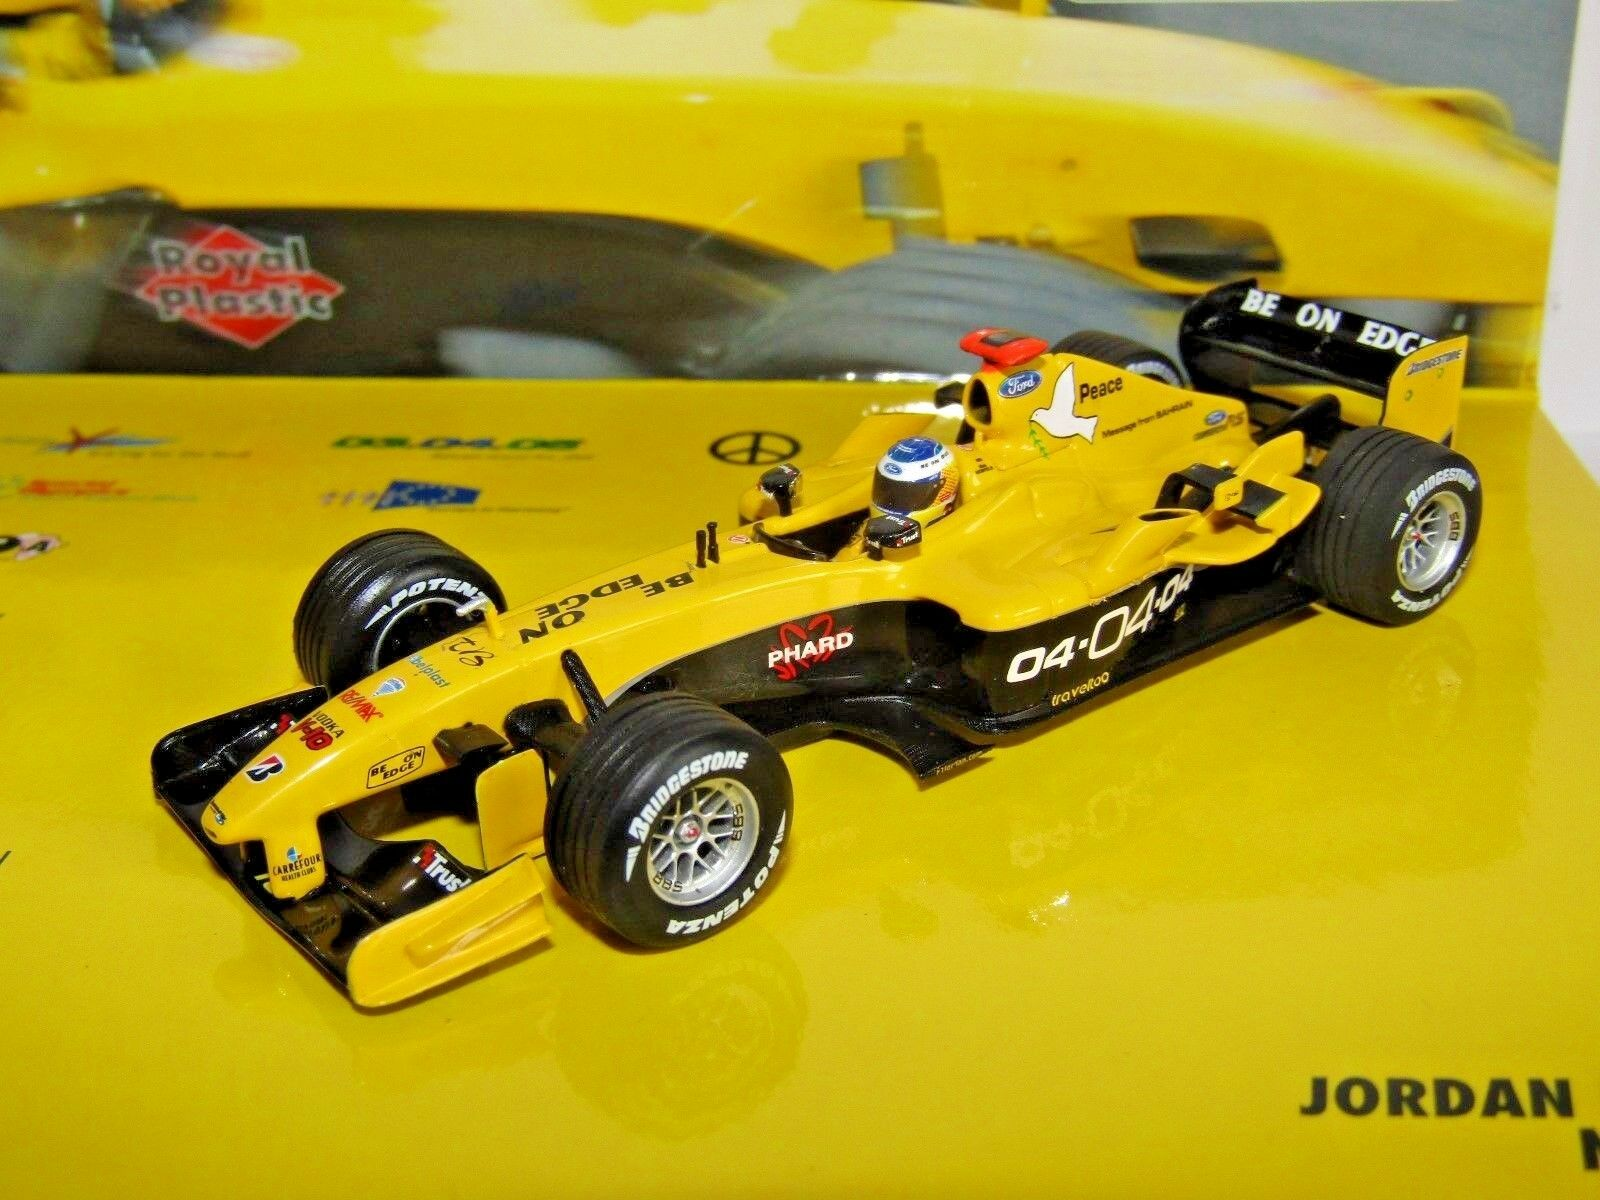 MINICHAMPS F1 JORDAN EJ14 N HEIDFELD 1 43 COMMEMORATIVE BOX